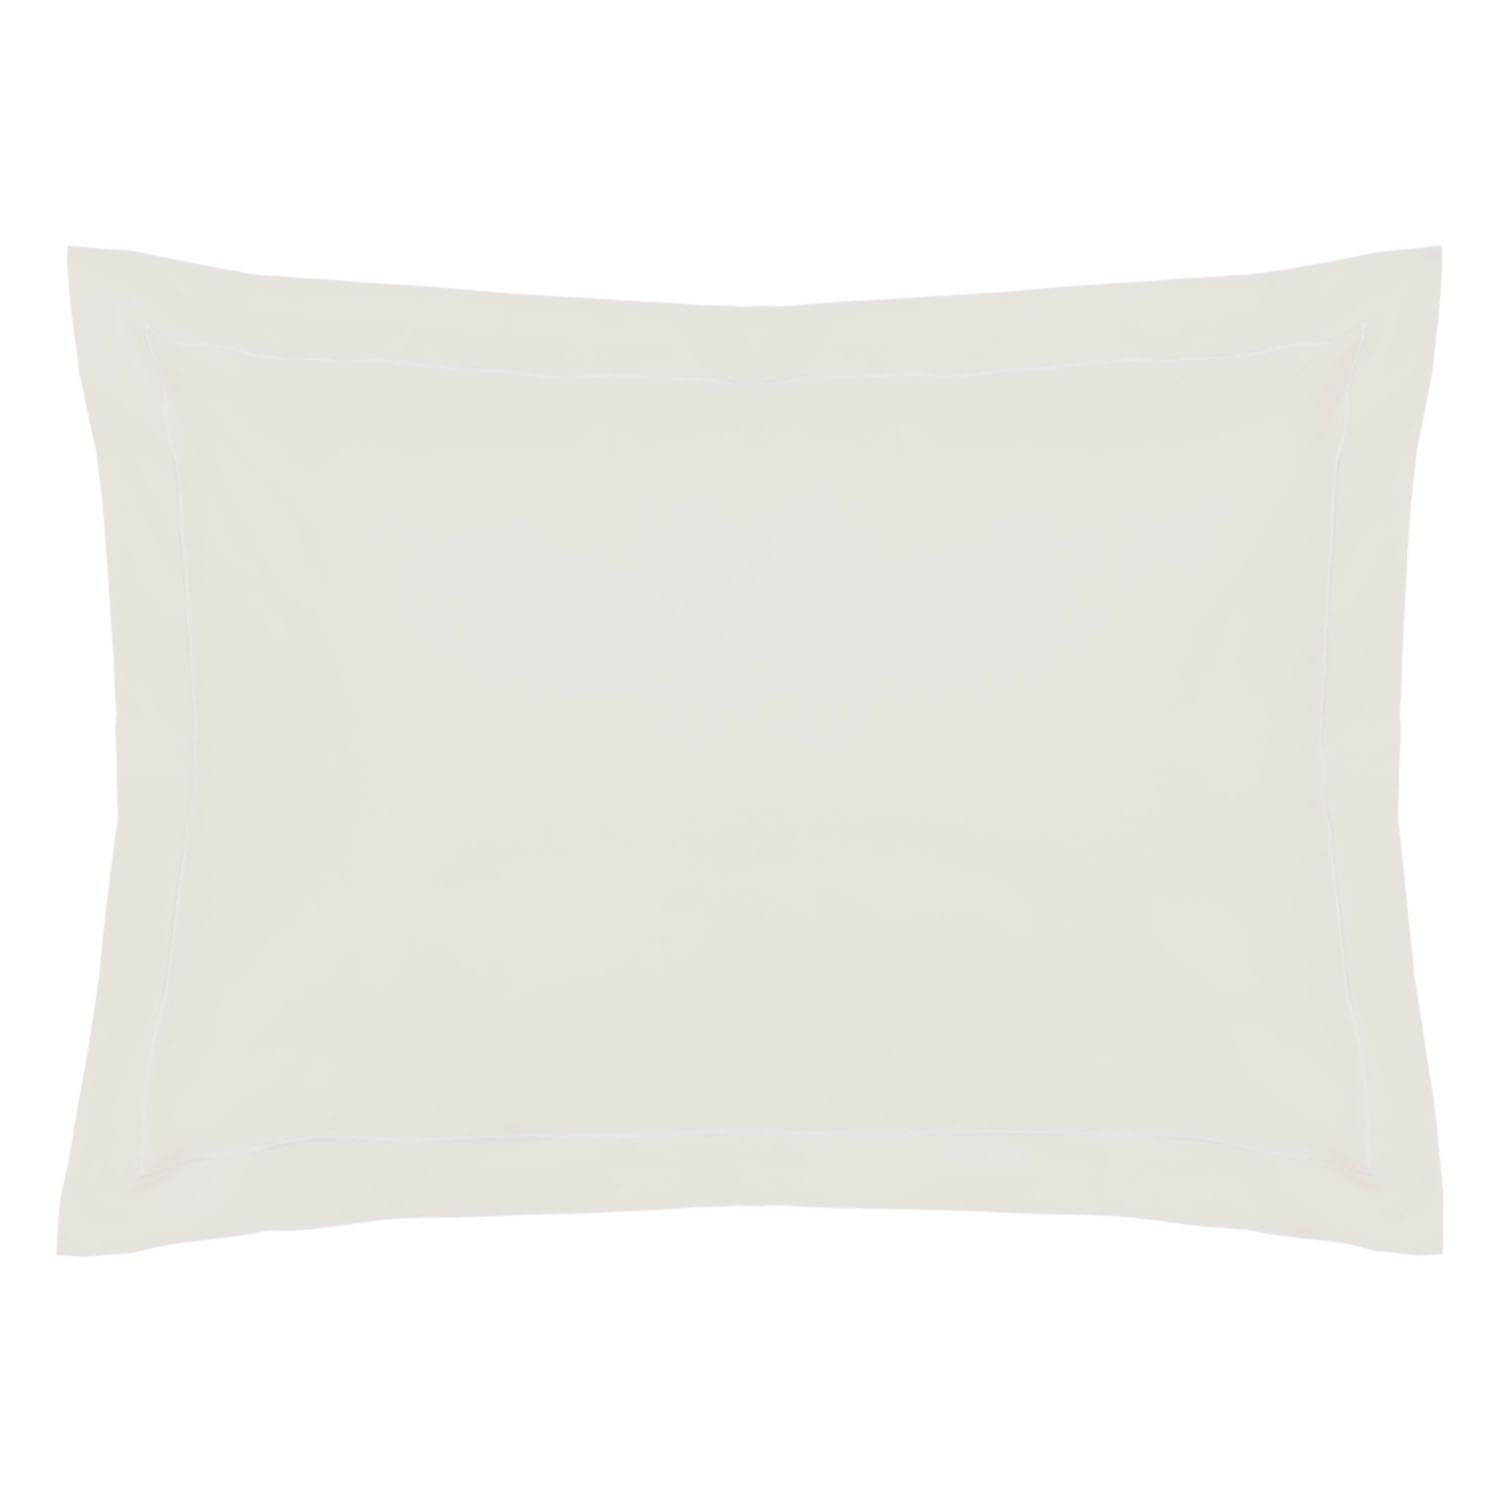 Belledorm 200 Thread Count Polycotton Oxford Pillowcase Ivory